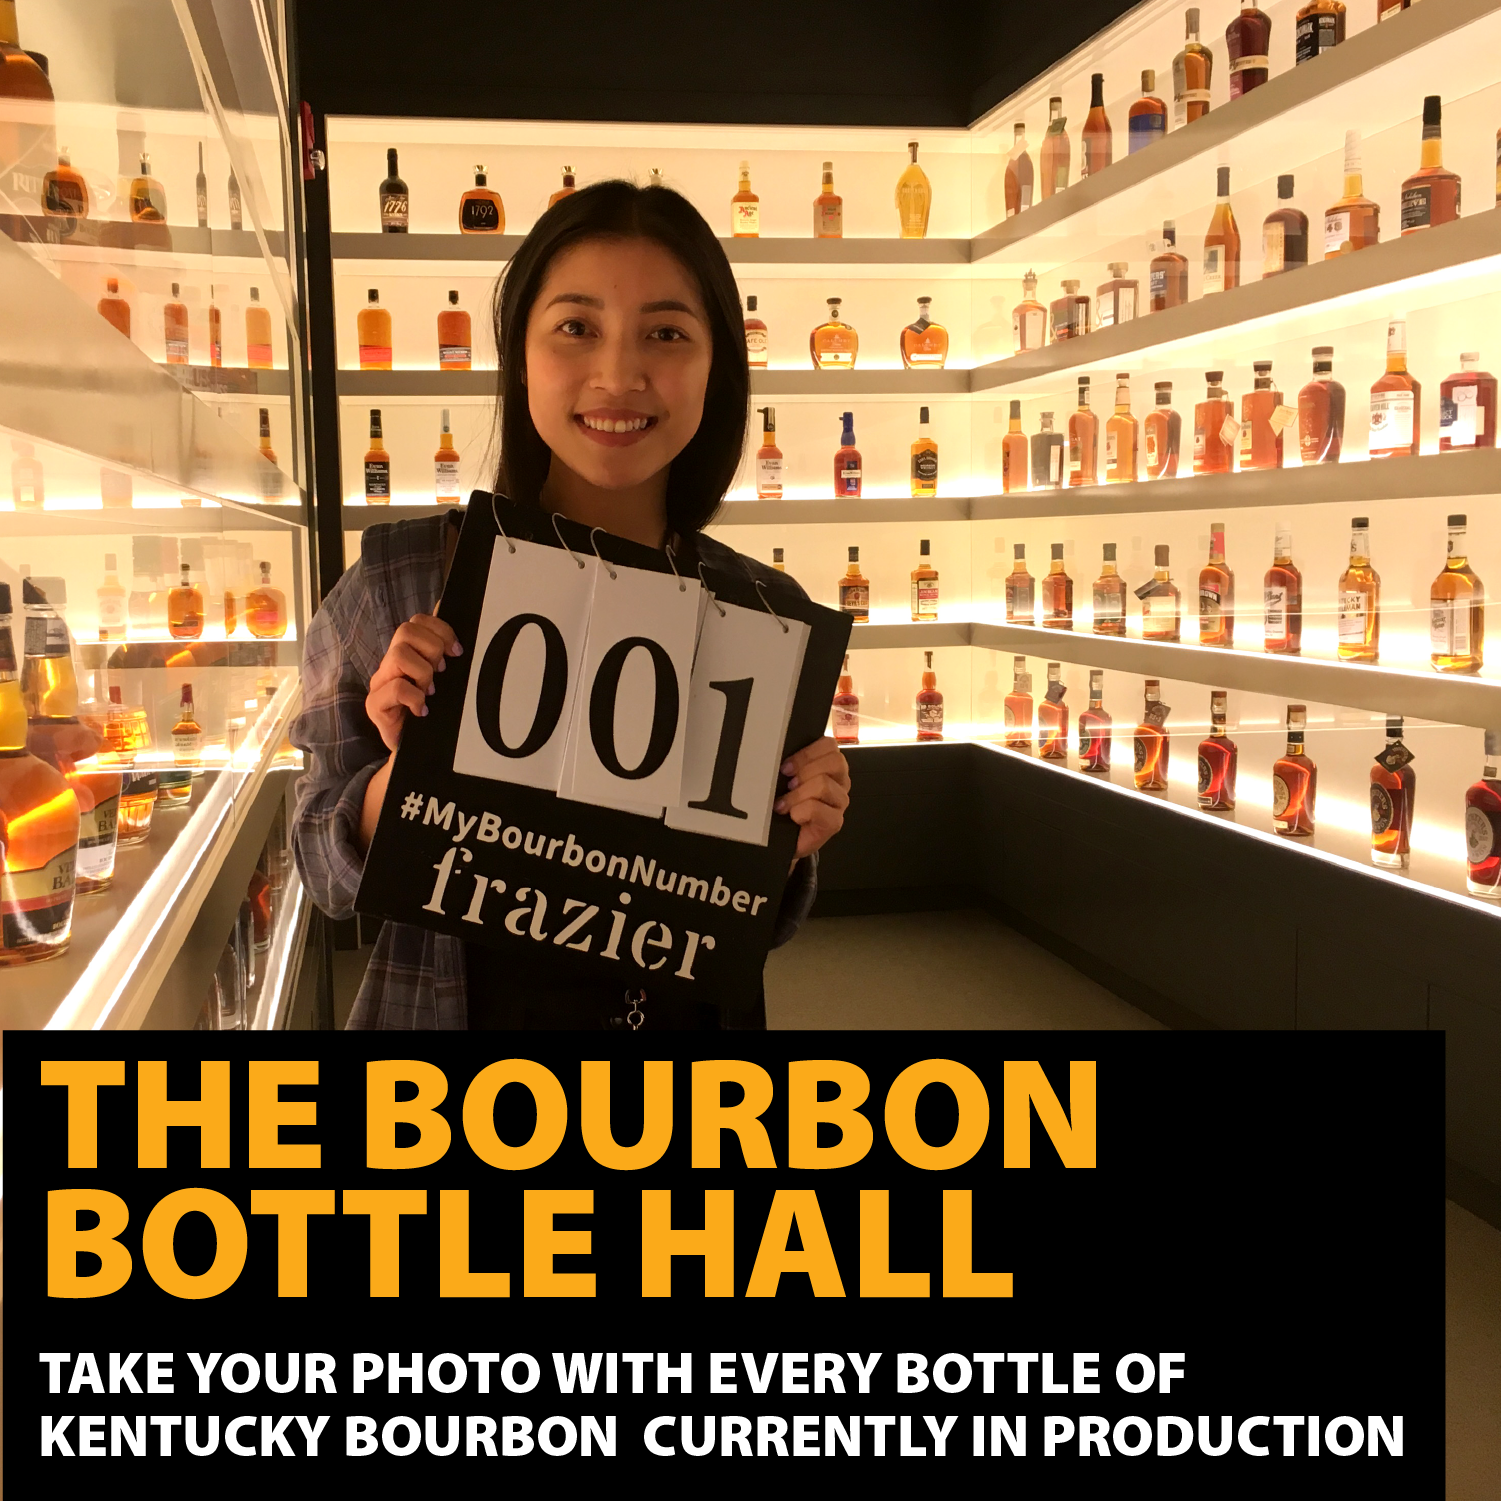 woman with a sign showing  how many bourbons she has tasted in the Bourbon Bottle Hall